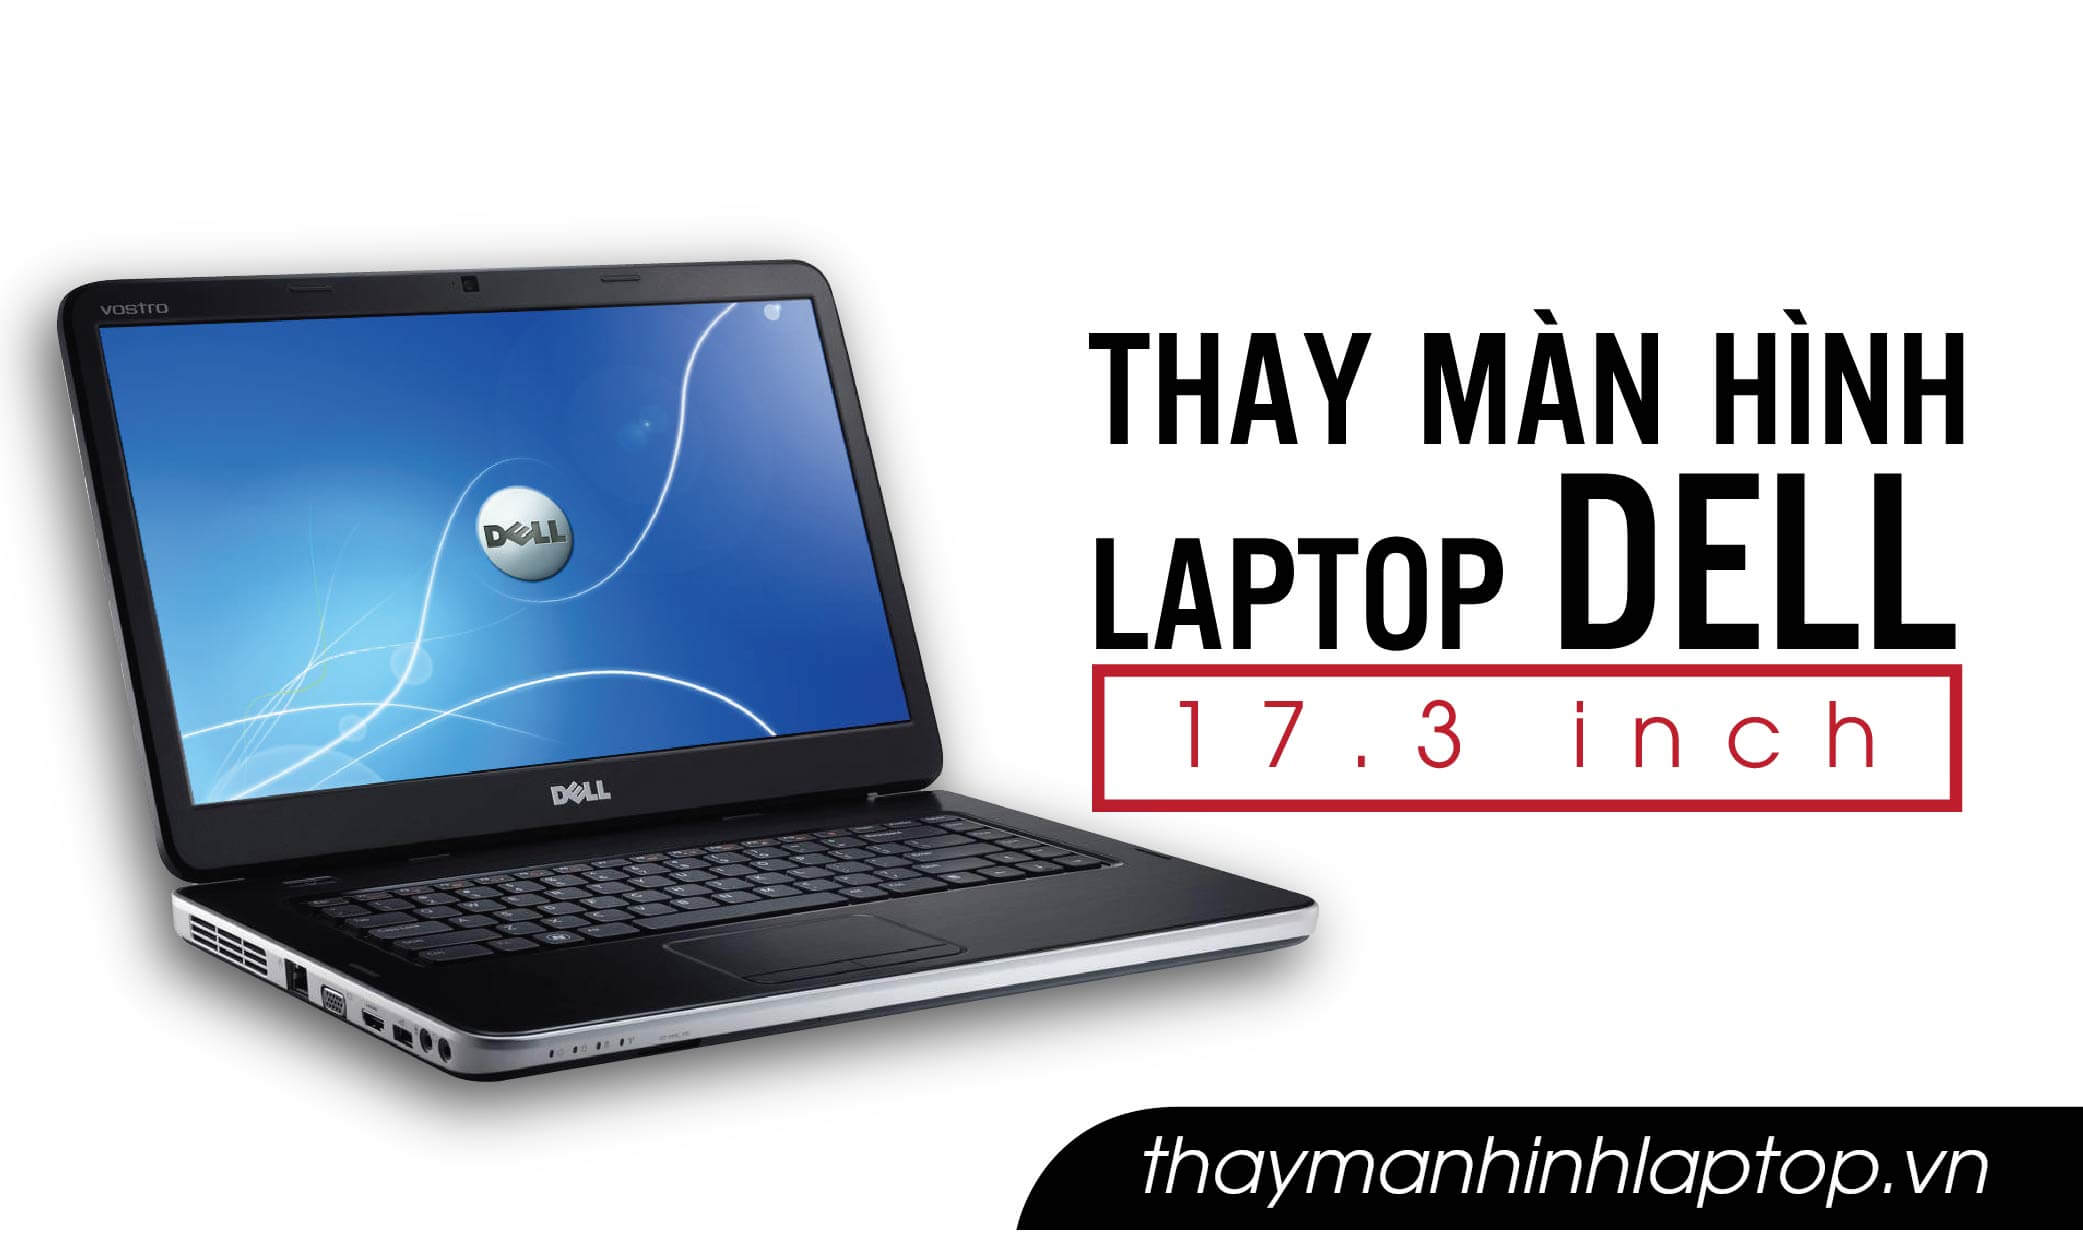 thay-man-hinh-laptop-dell-17-3-inch